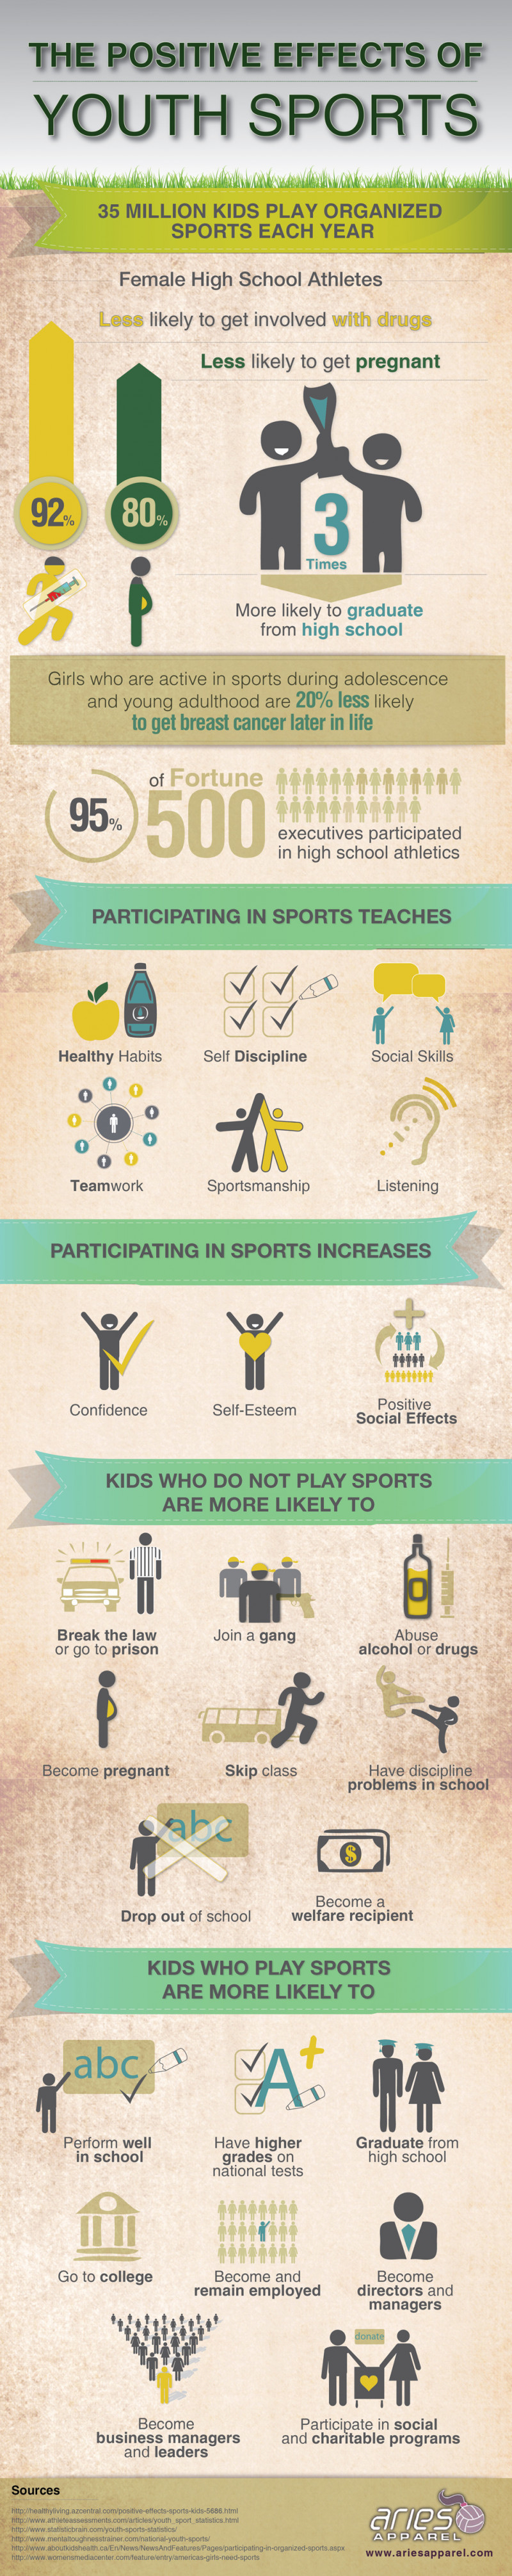 The Positive Effects of Youth Sports